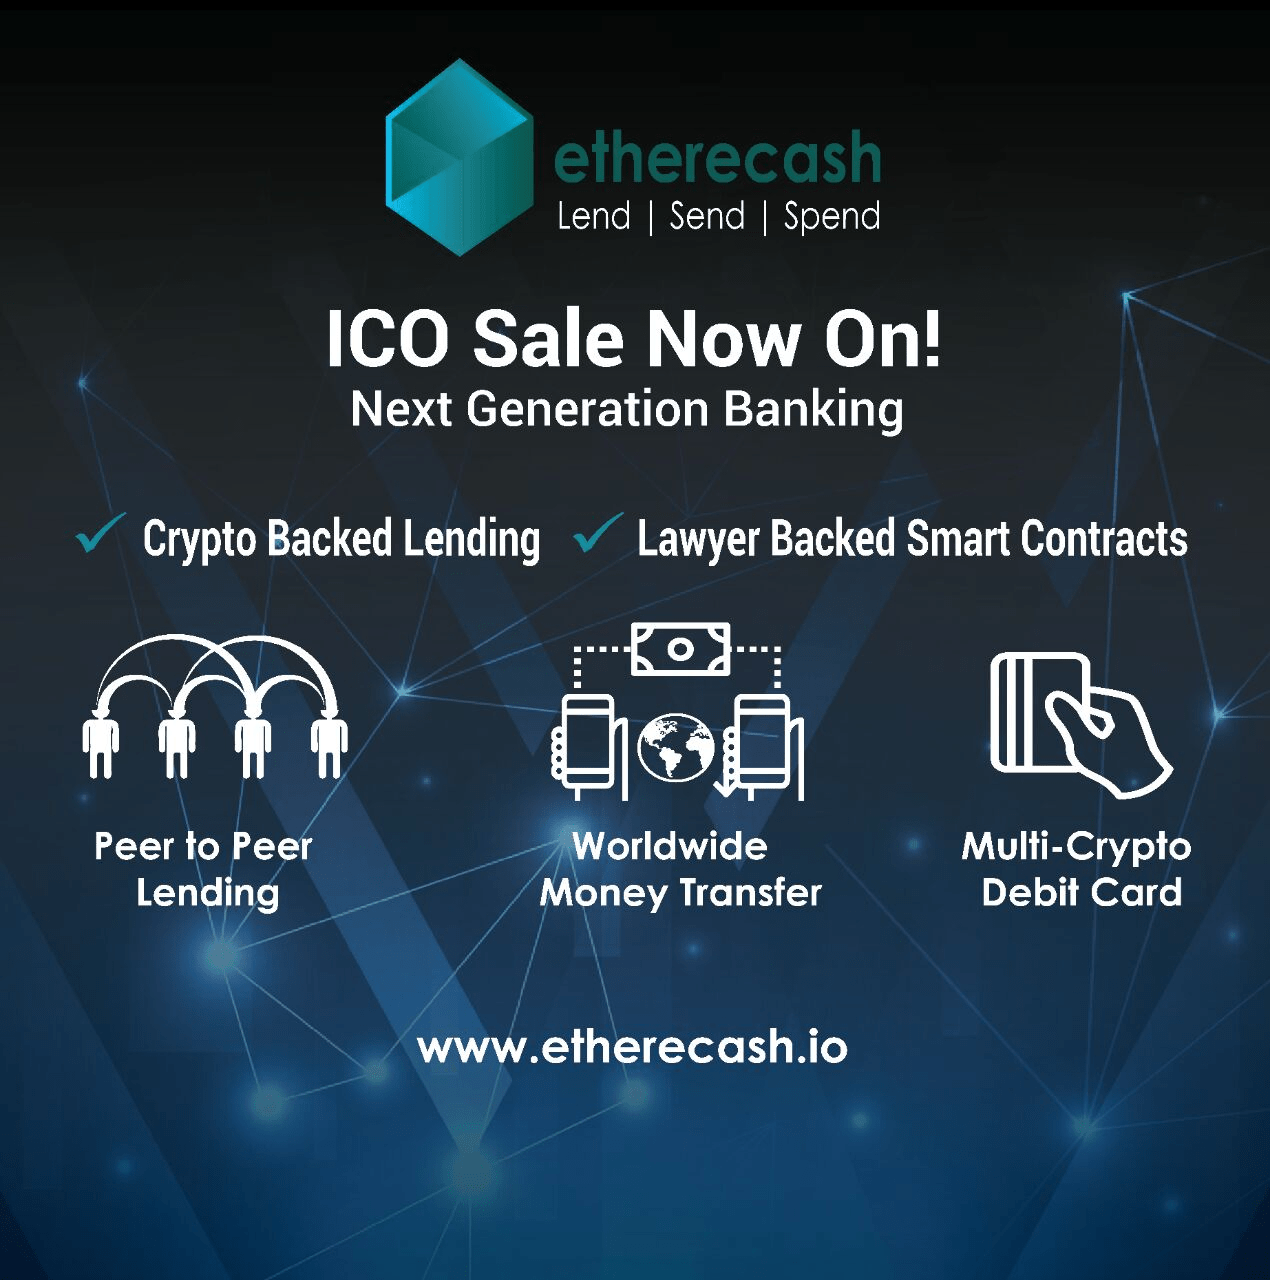 Blockchain P2P Lending, Sending, and Spending: Etherecash Garners Support From Over 40,000 Contributors During Pre-ICO